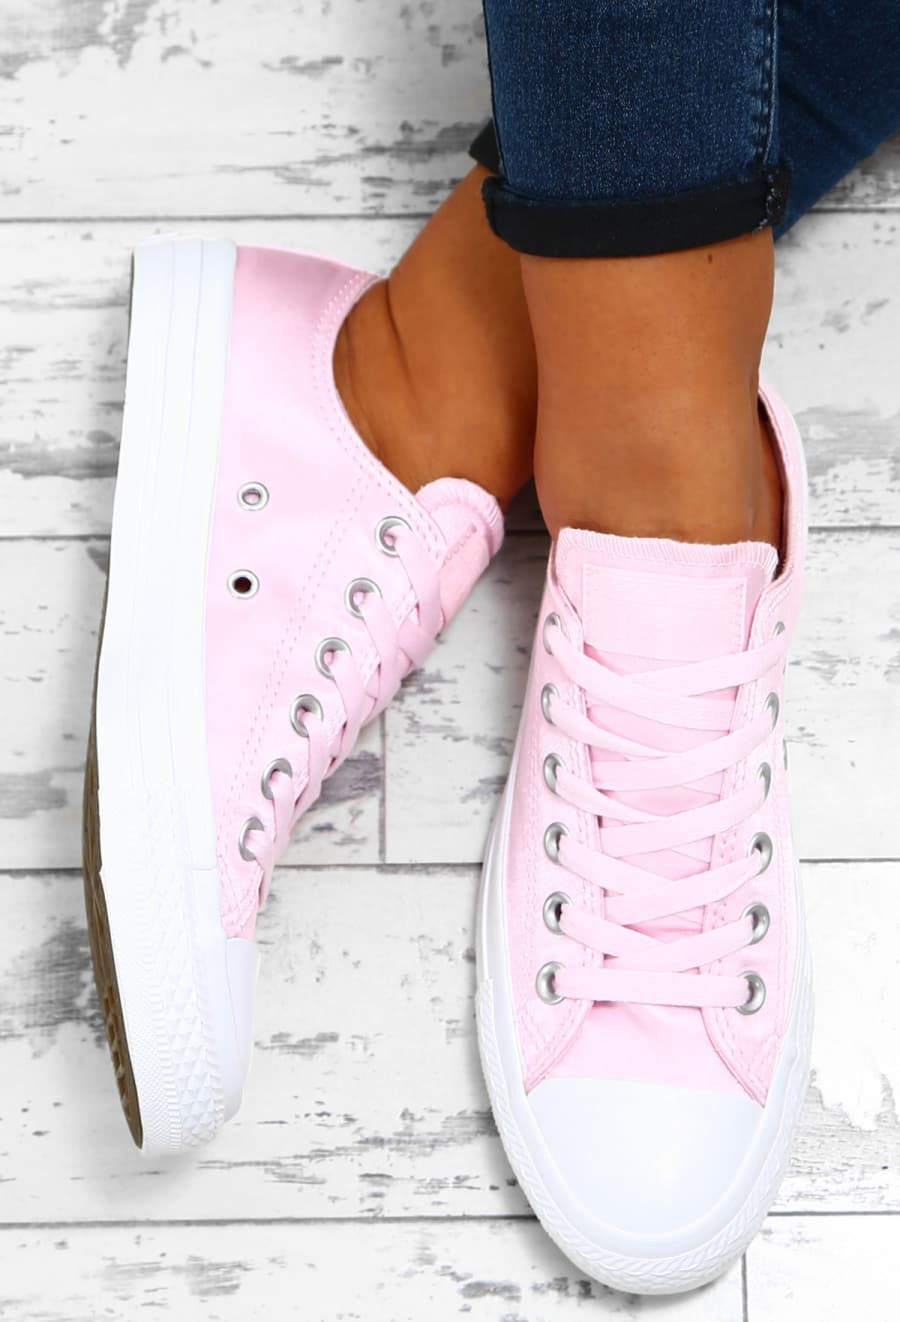 cab9581ad8b8 Chuck Taylor Converse All Star Baby Pink Satin Trainers - UK 3 ...